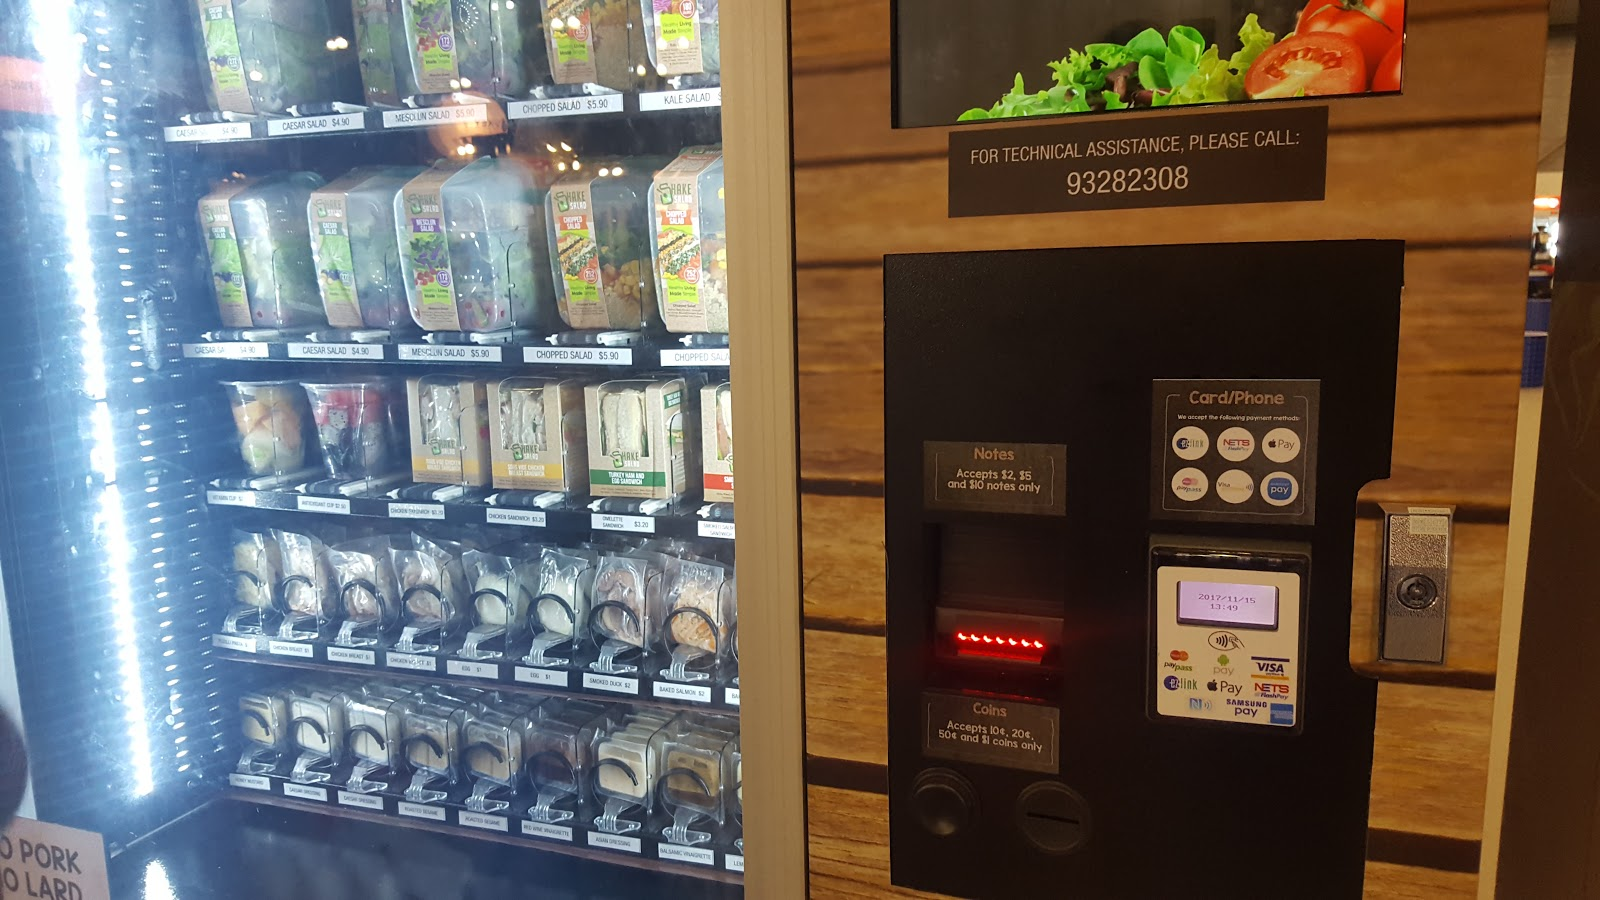 cashless payment at salad vending machine. Photo credit: Lucia Ziyuan